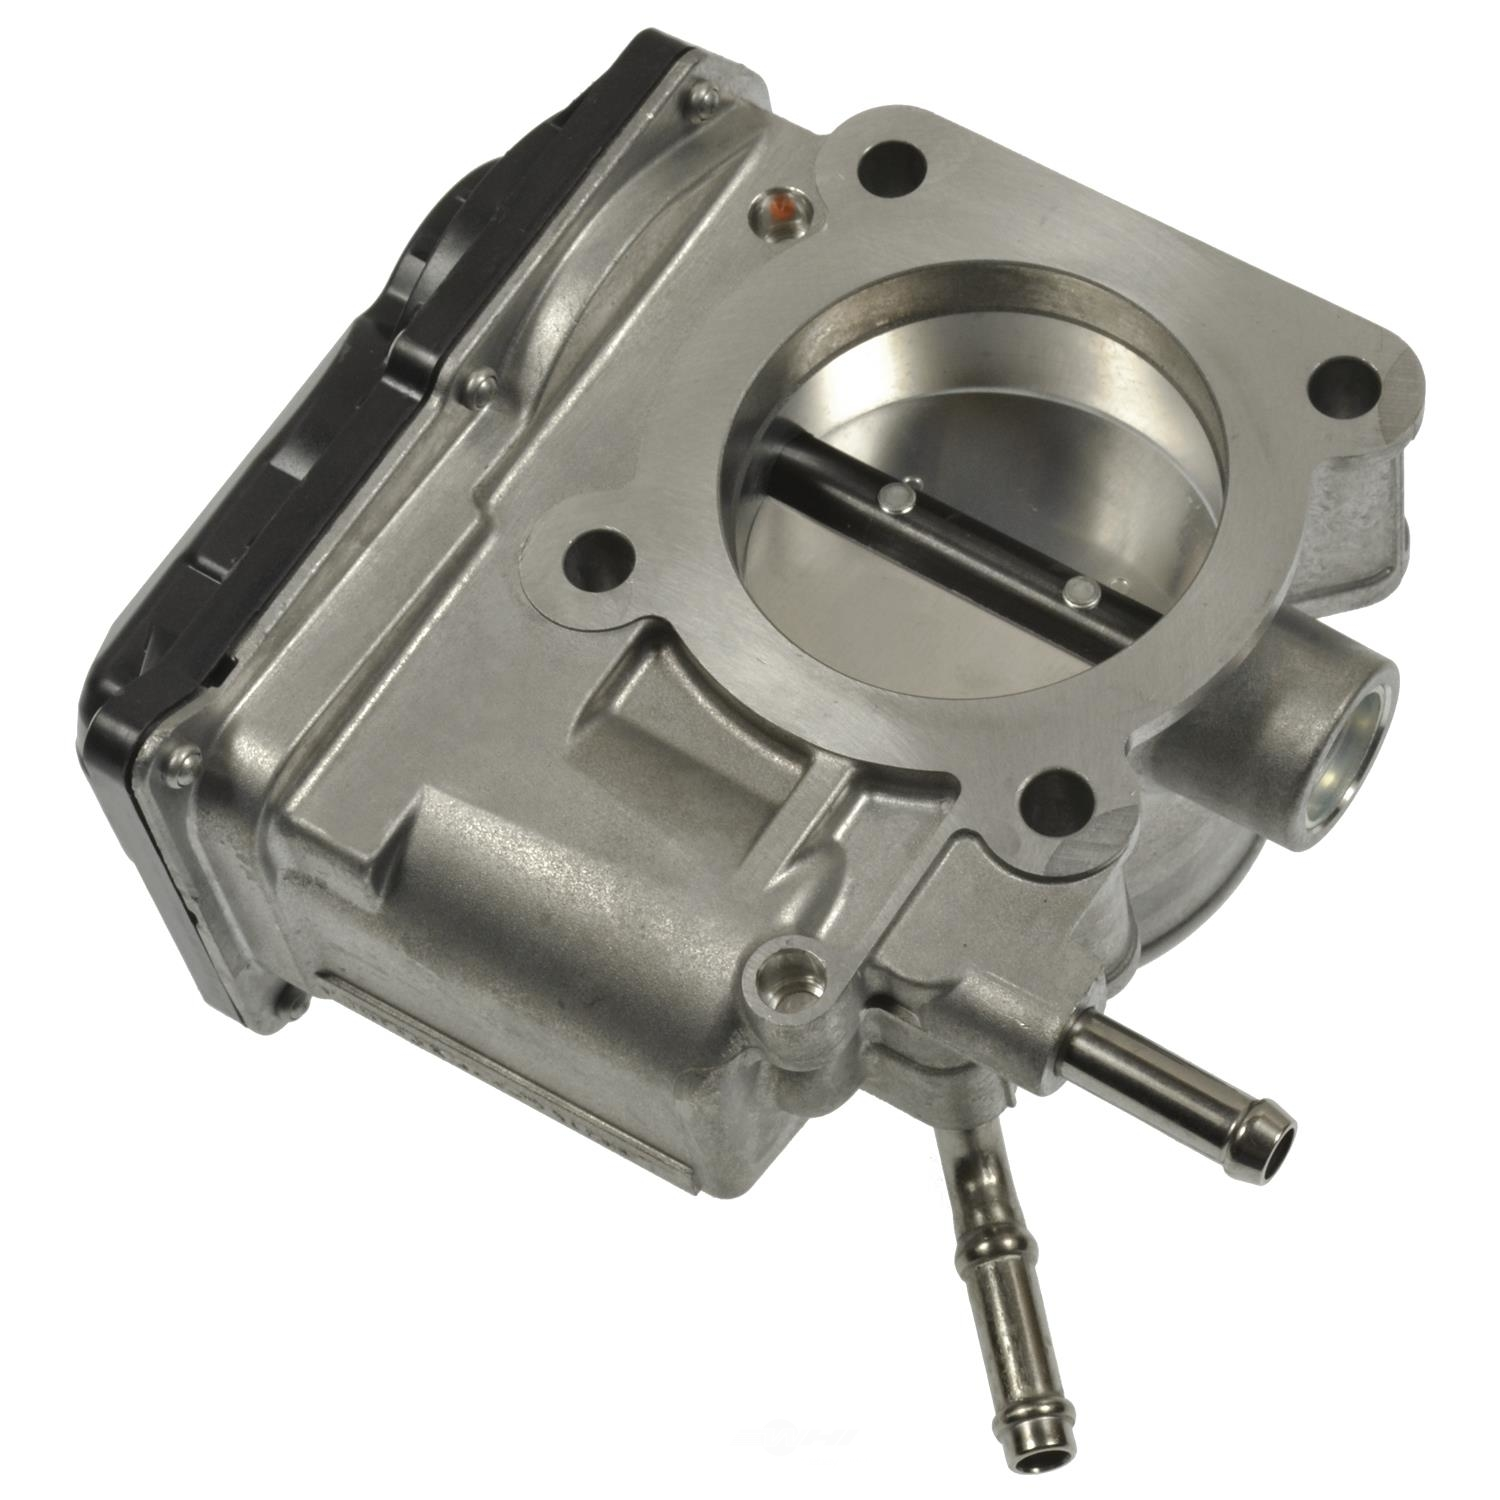 TECHSMART - Fuel Injection Throttle Body Assembly - TCS S20126